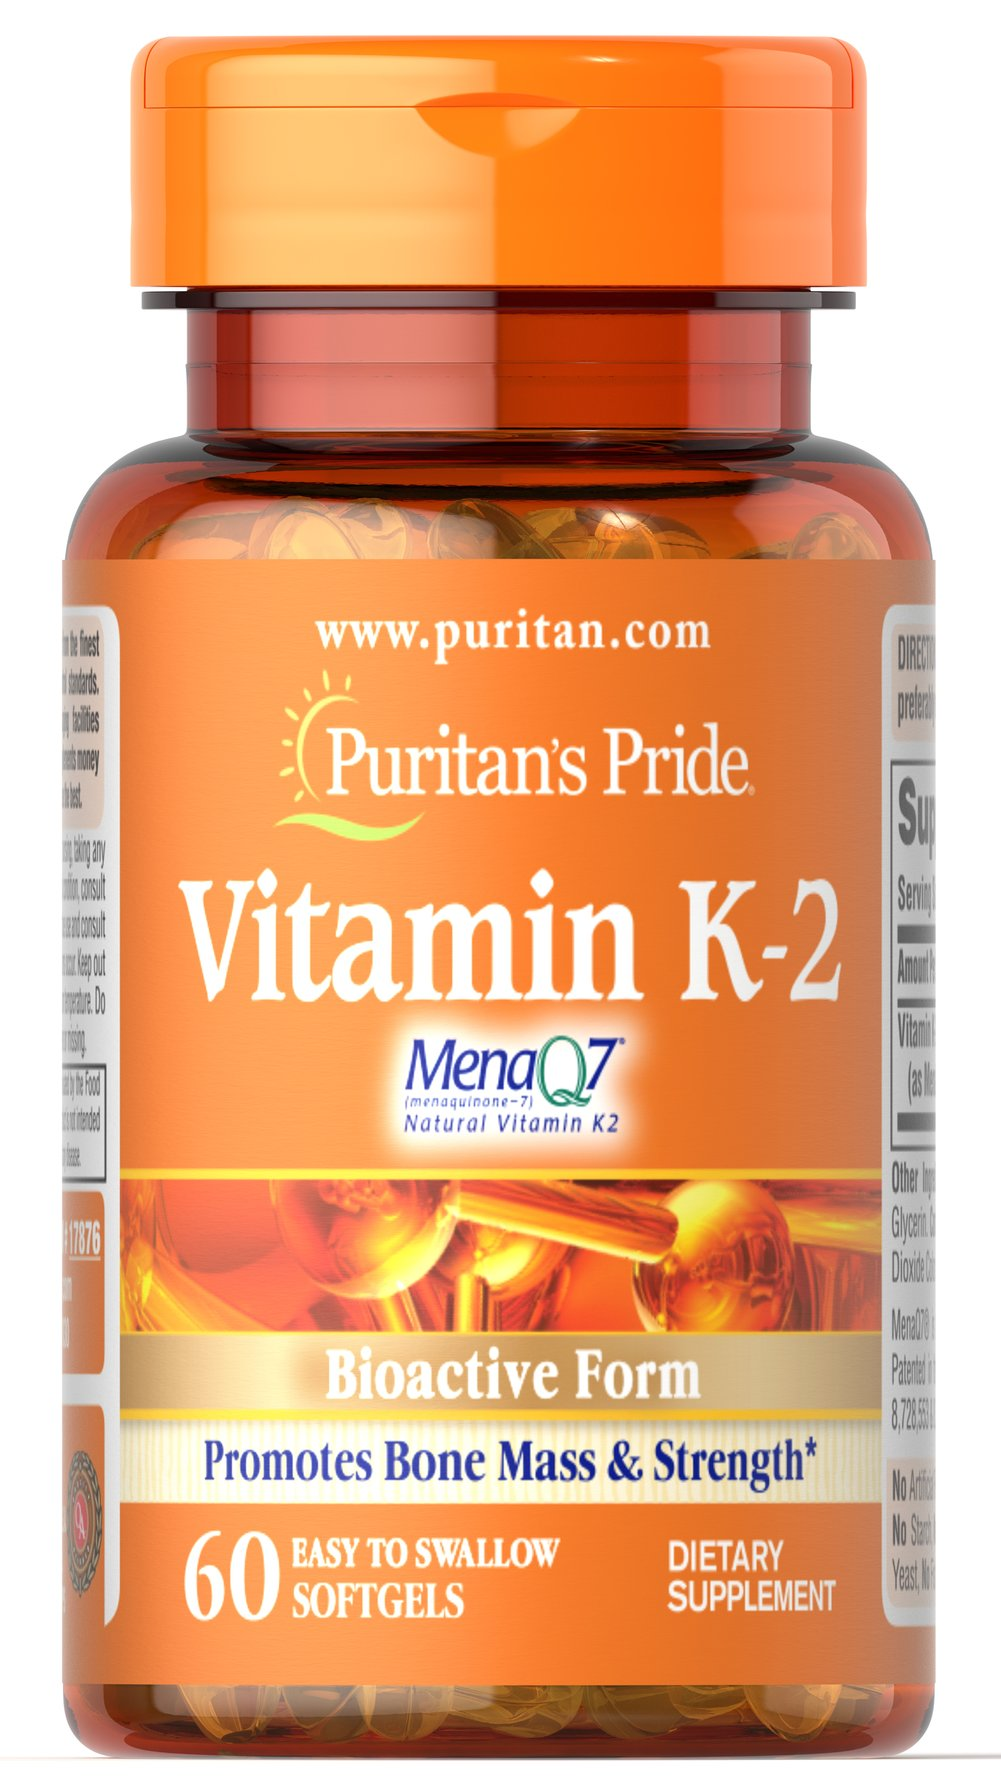 Vitamin K-2 (MenaQ7) 50 mcg Thumbnail Alternate Bottle View